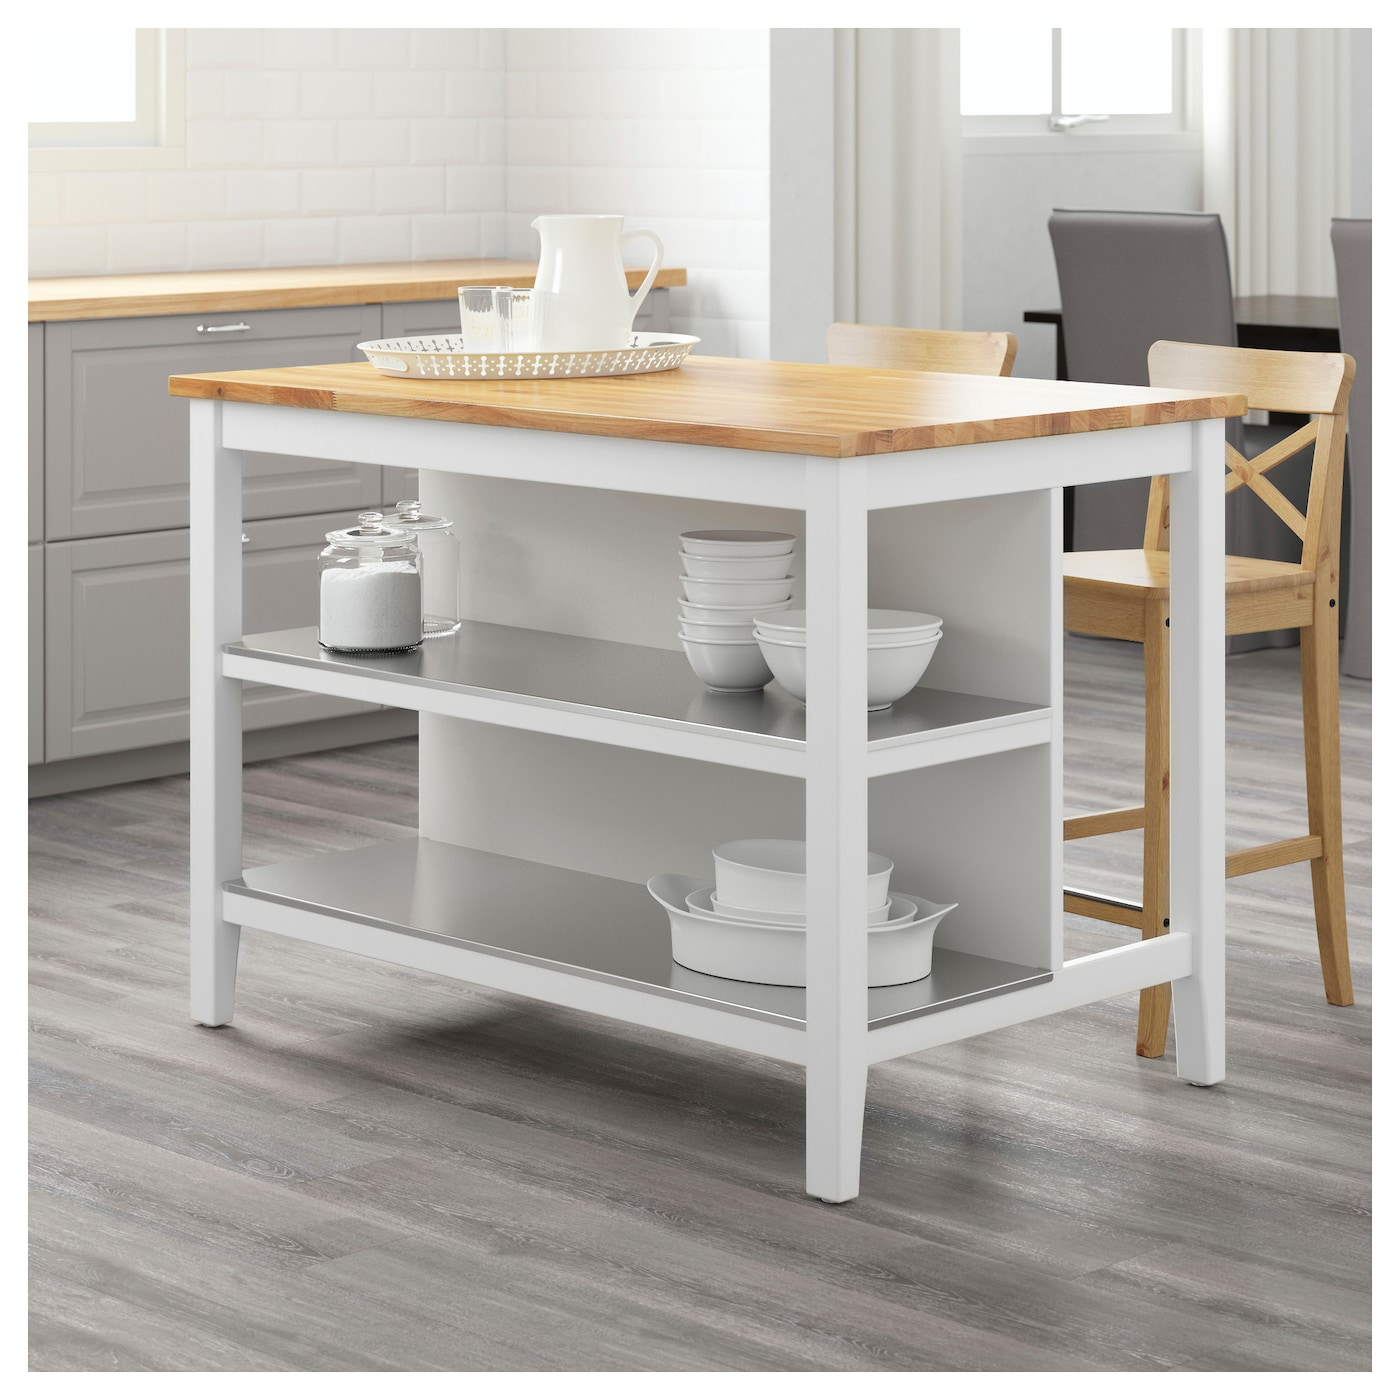 oak kitchen island with seating stenstorp kitchen island white oak 126 x 79 cm ikea 7133